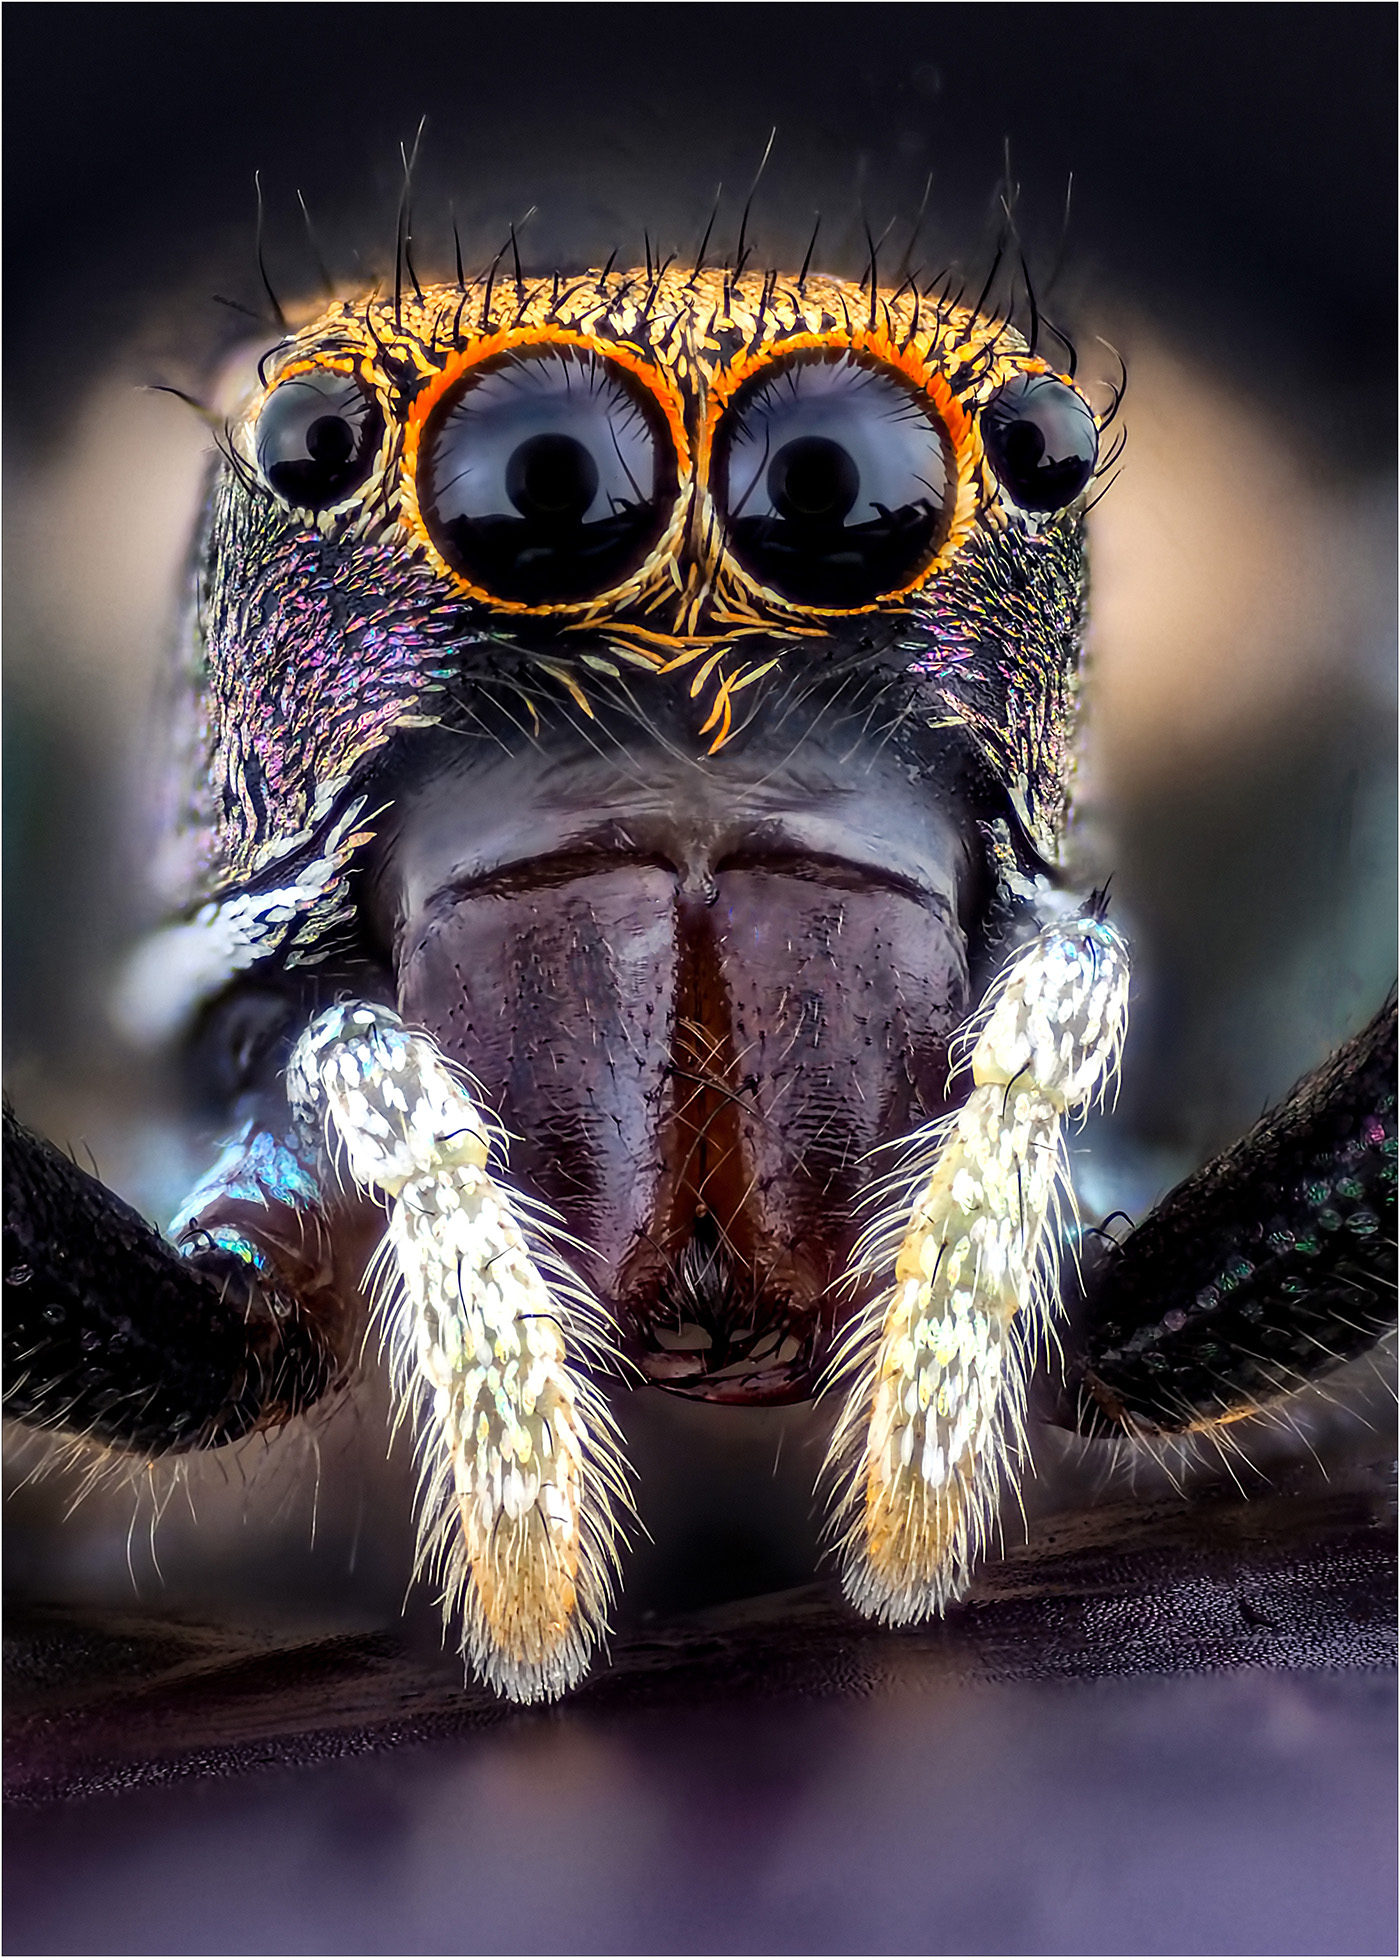 Don Binkins - Jumping Spider